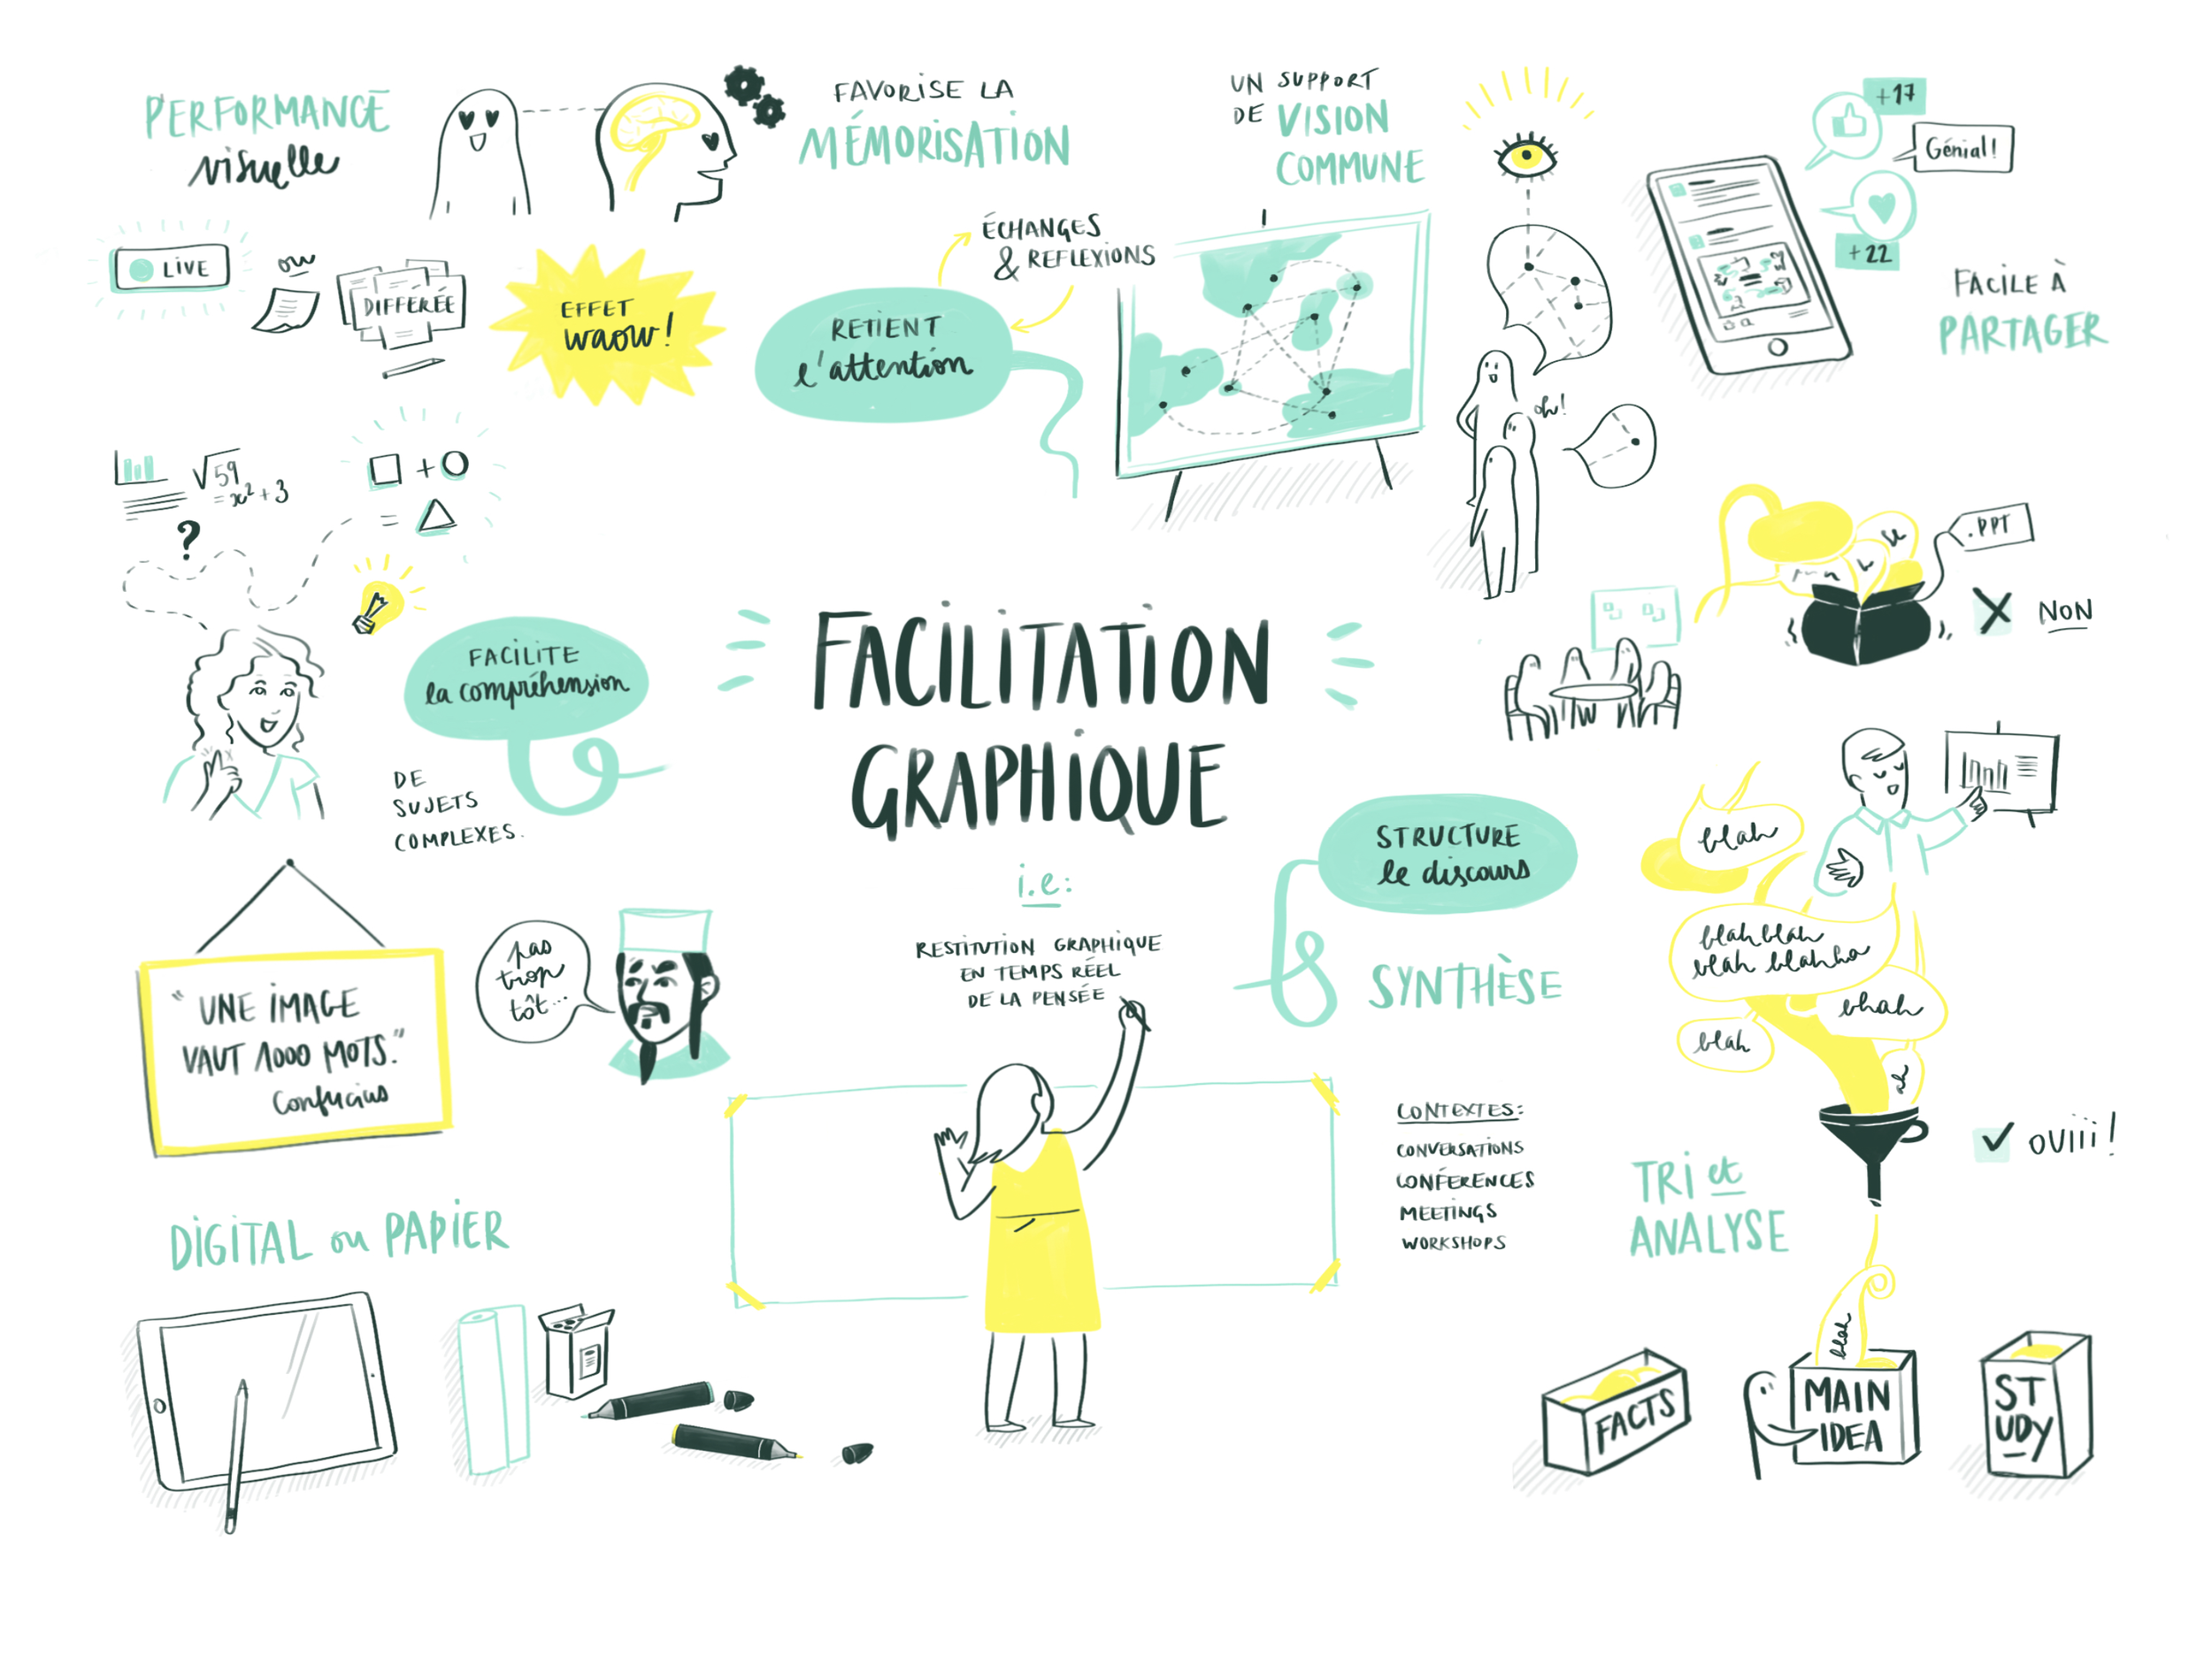 Graphic facilitation – or visual scribing – is used to display ideas and discussions in a summarized  and catchy way. By using visuals, we are speaking to the most elementary part of the brain that has been used to make sense of the world from visuals since prehistorical ages. The outcome is friendly and easy-to-share medium, that facilitates understanding and memorization of the main concepts it presents.